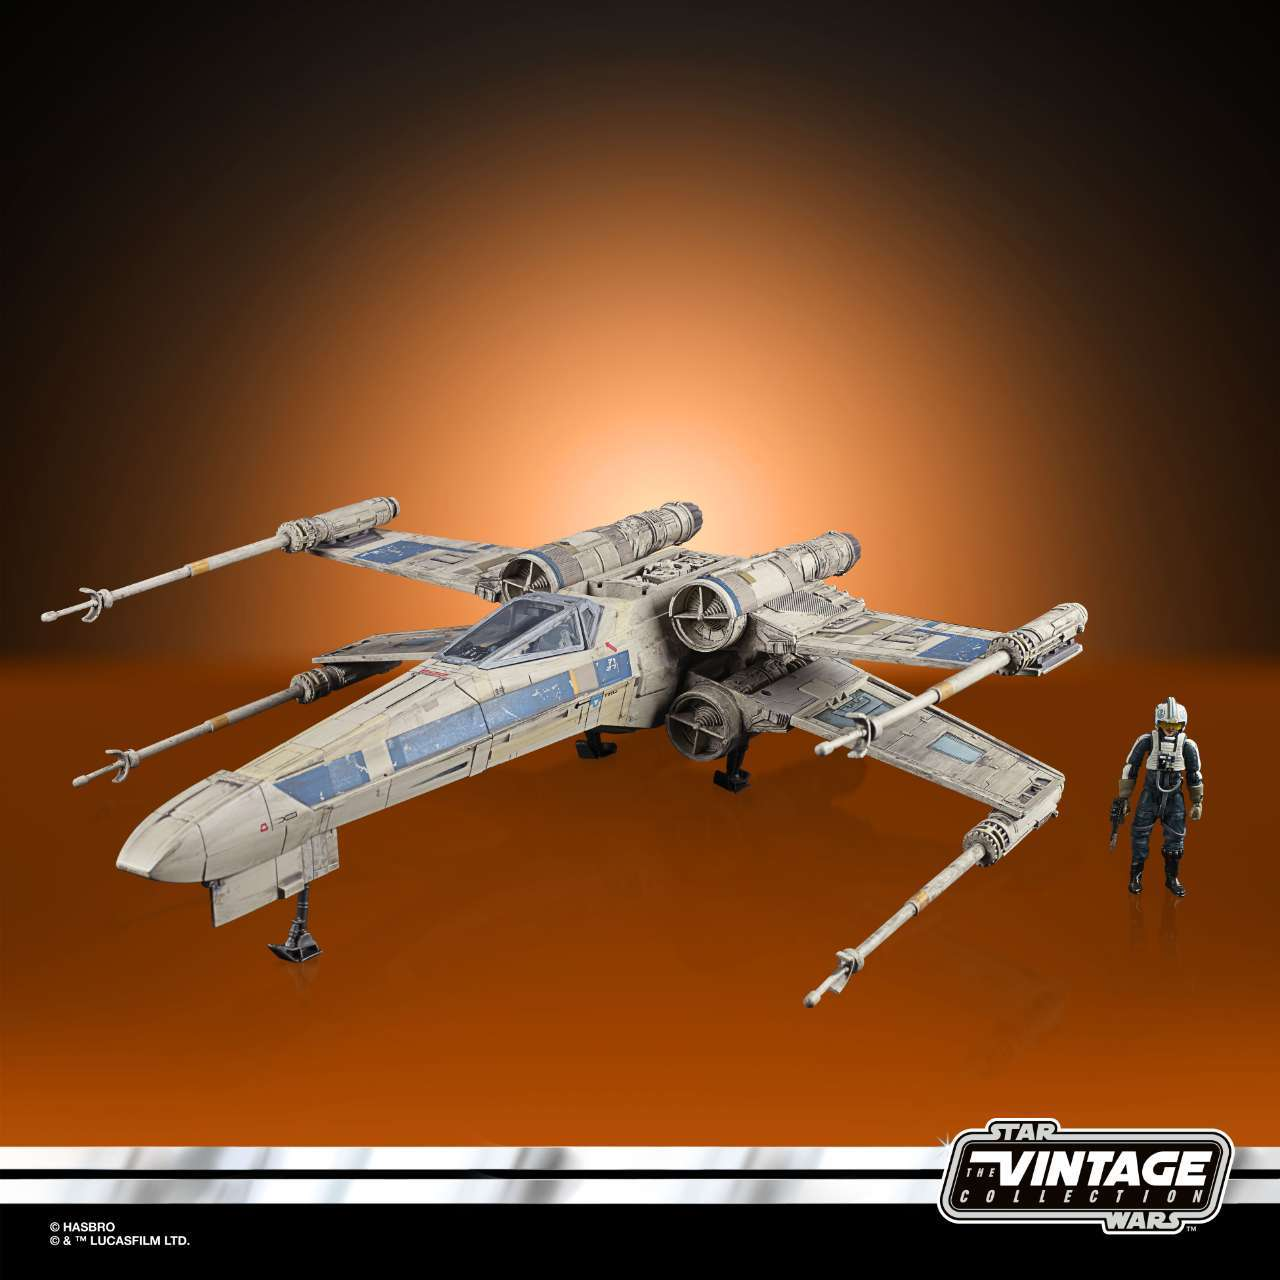 STAR WARS THE VINTAGE COLLECTION ANTOC MERRICK S X-WING FIGHTER Vehicle and Figure - oop 7